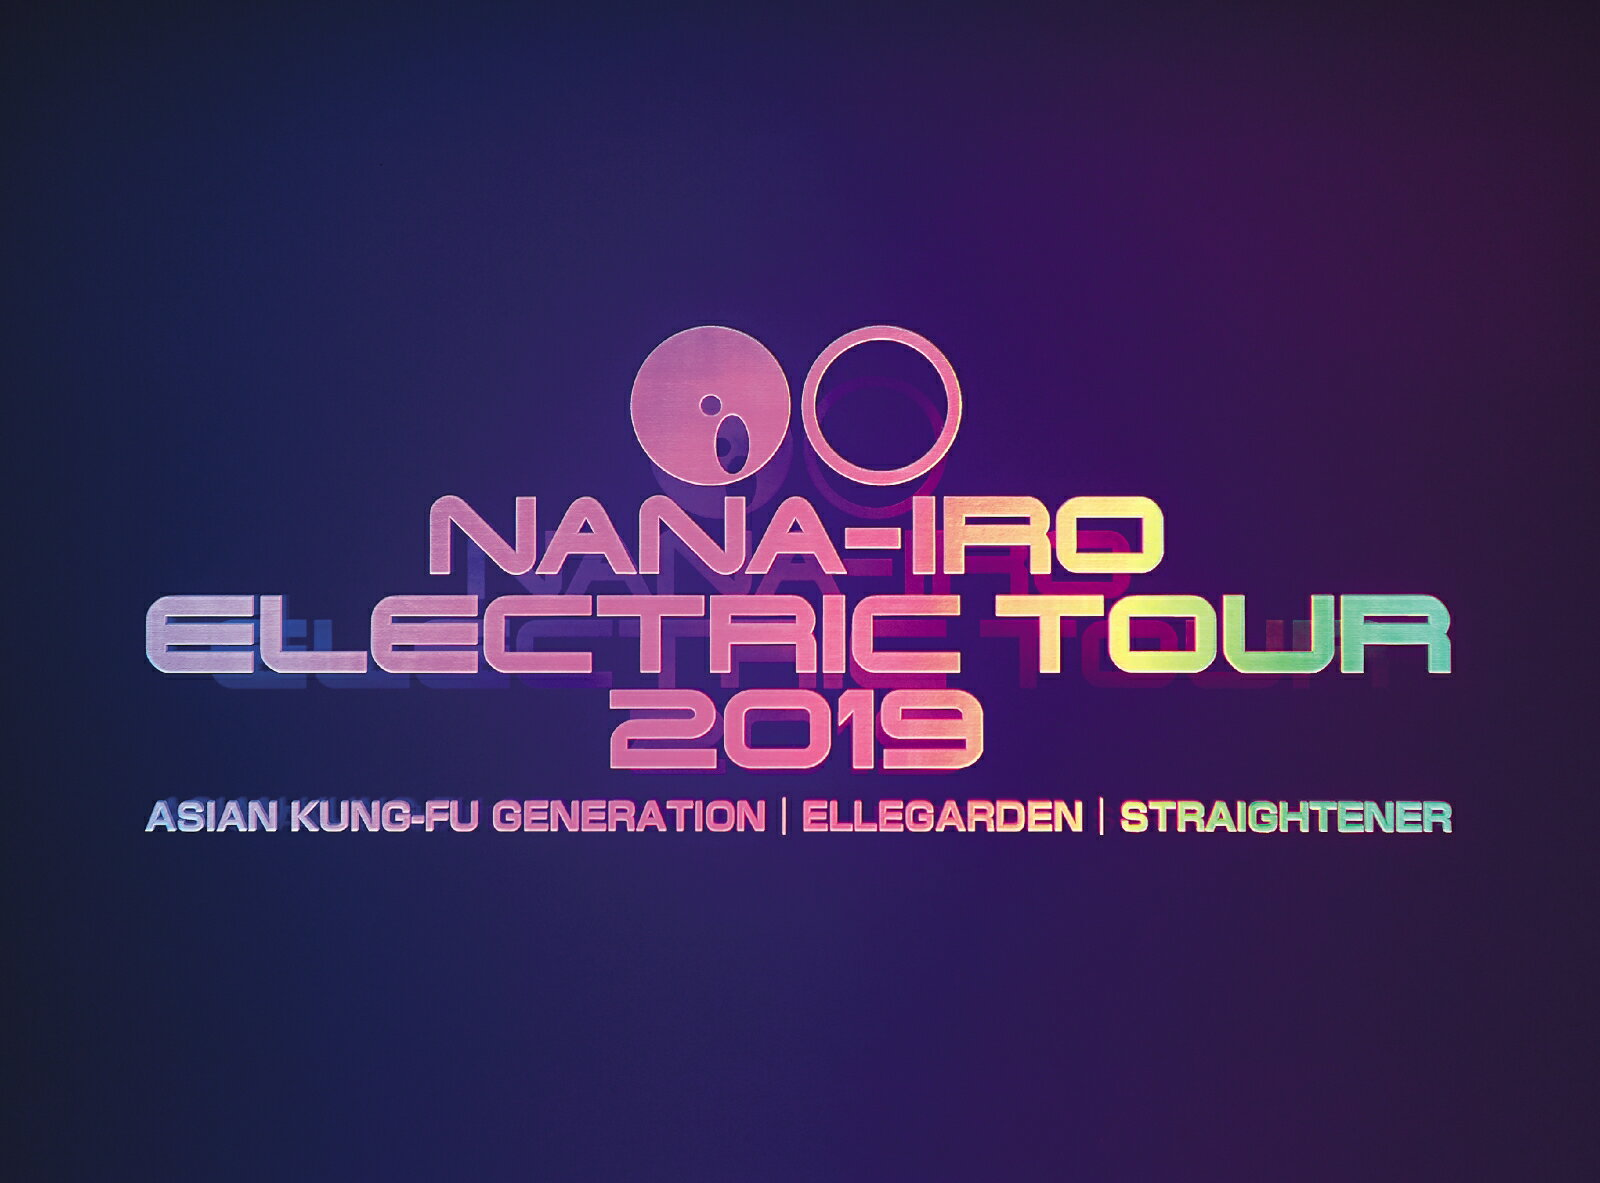 NANA-IRO ELECTRIC TOUR 2019 (初回生産限定盤 Blu-ray + PHOTO BOOOK)【Blu-ray】画像